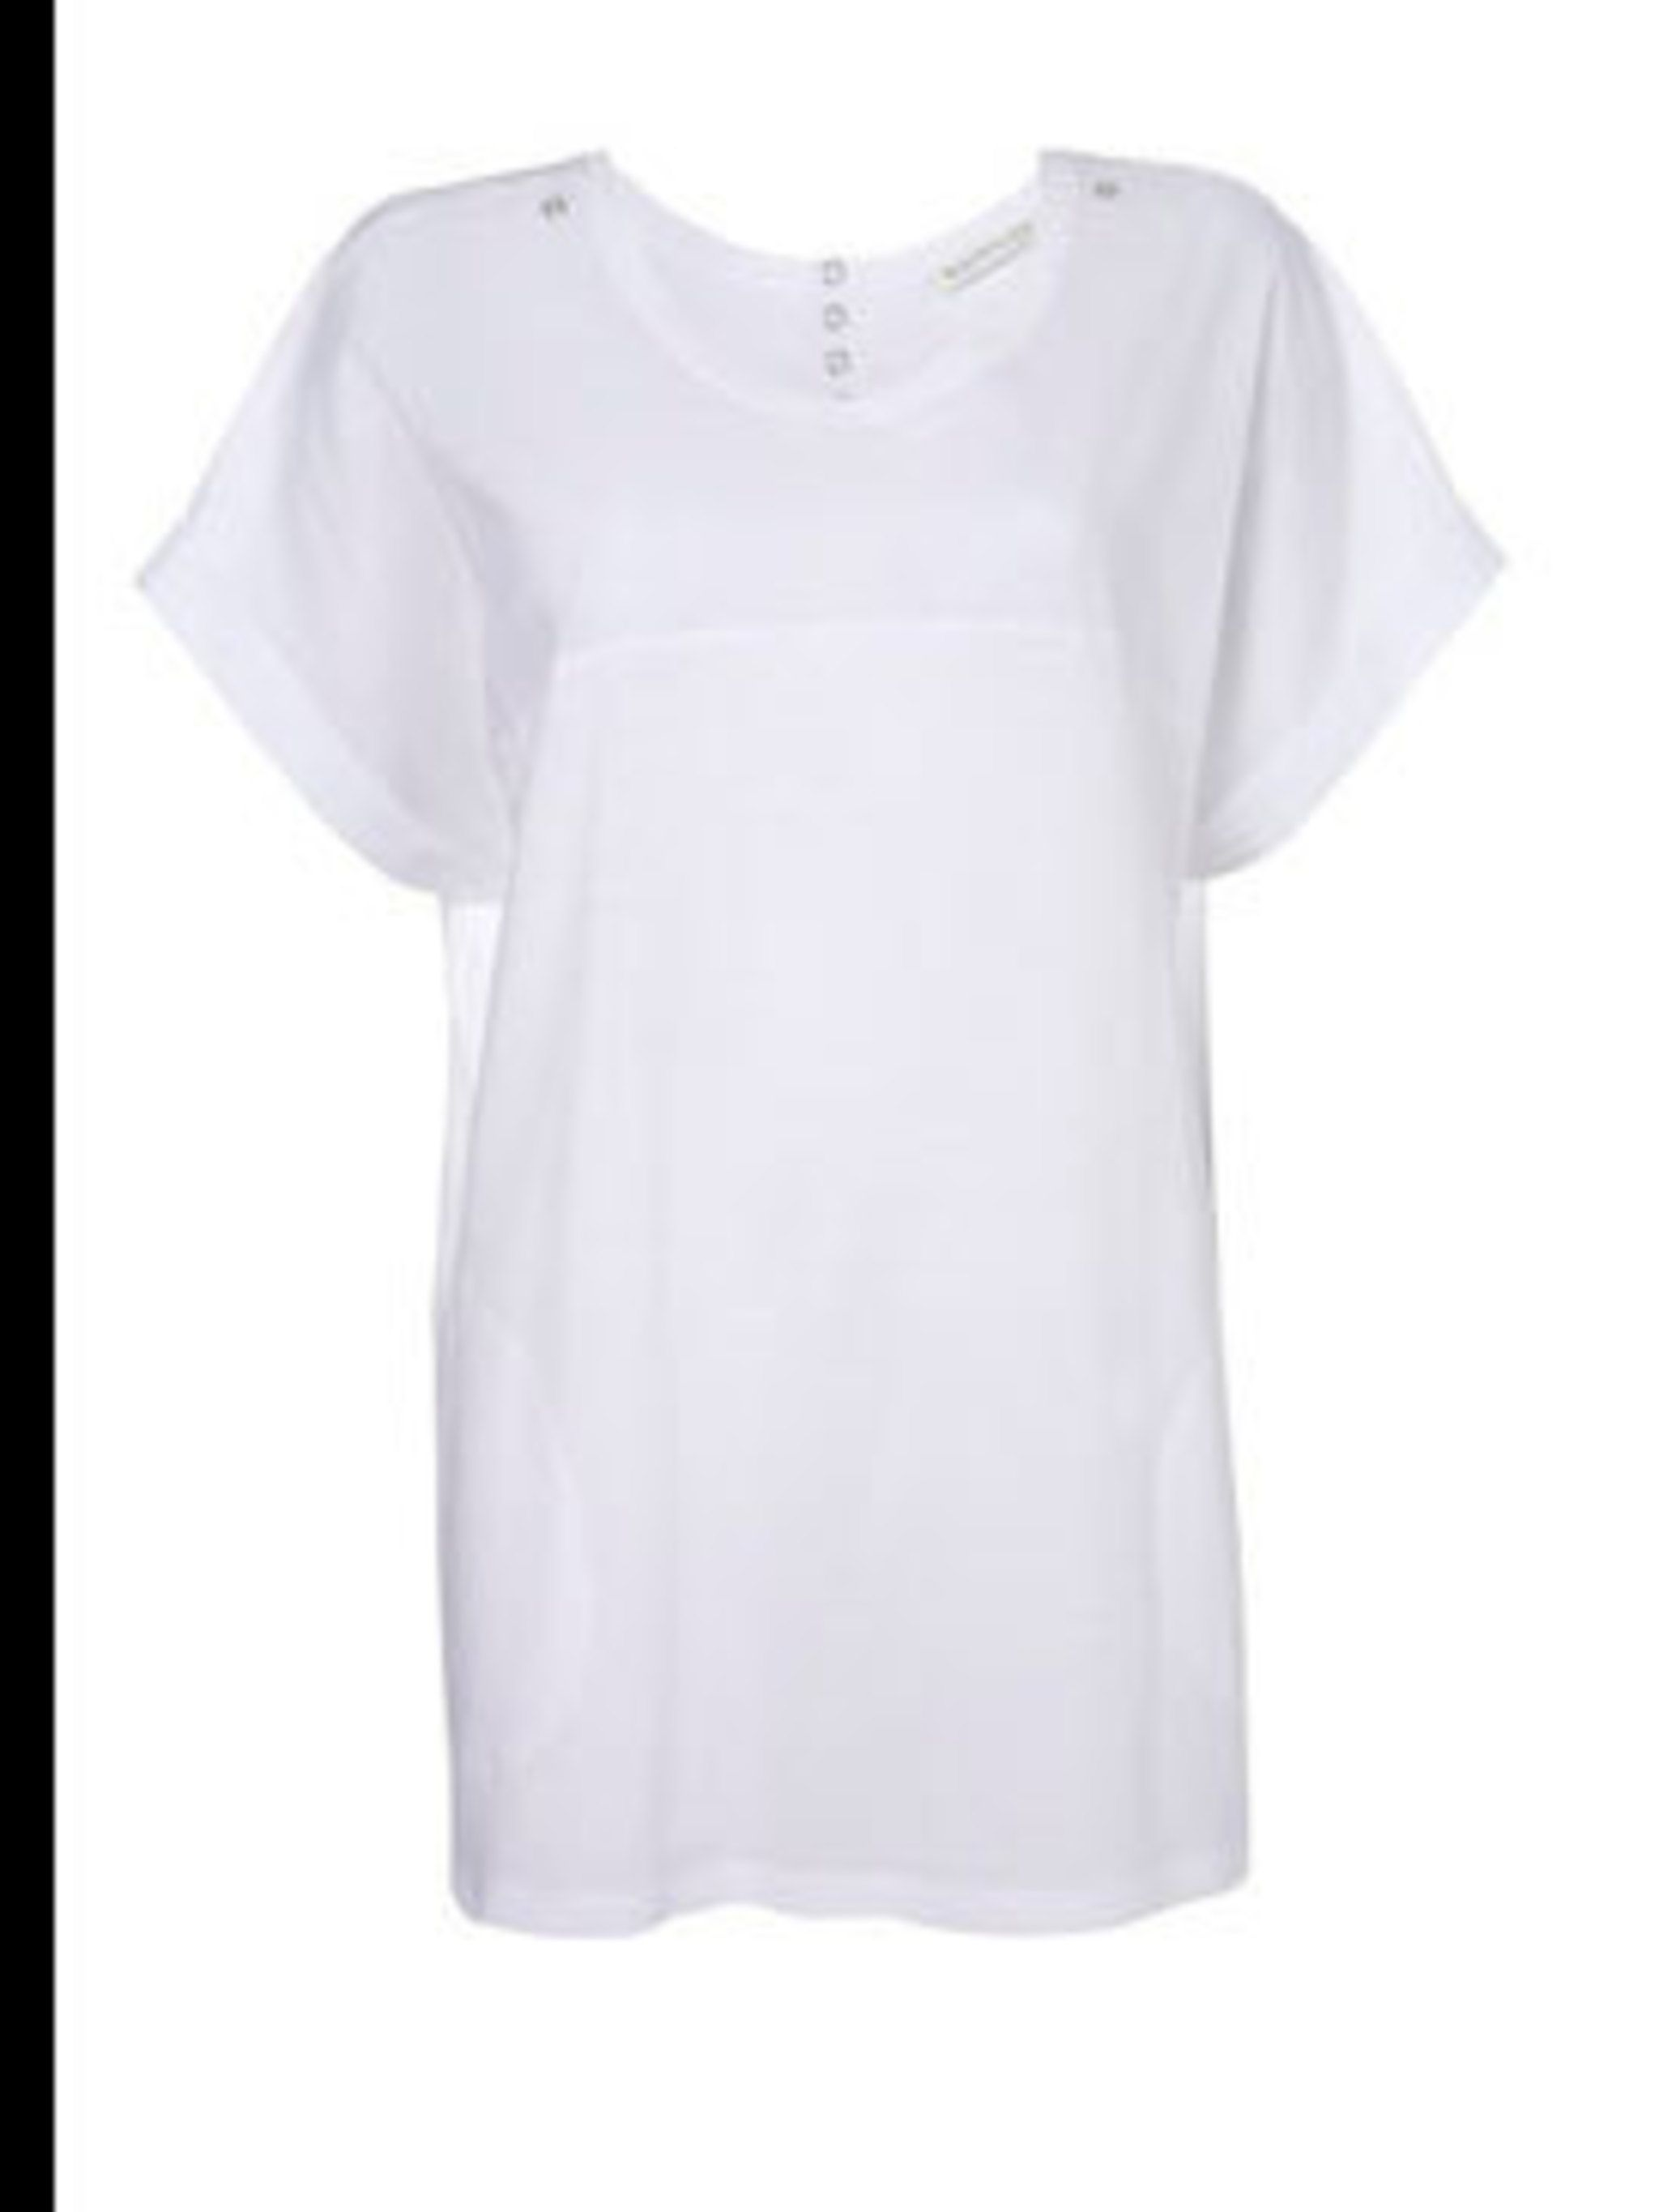 """<p>White tee, £45, by <a href=""""http://www.whistles.co.uk/fcp/product/whistles//Woven-Yoke-Oversize-Tee/903000053480"""">Whistles</a></p>"""